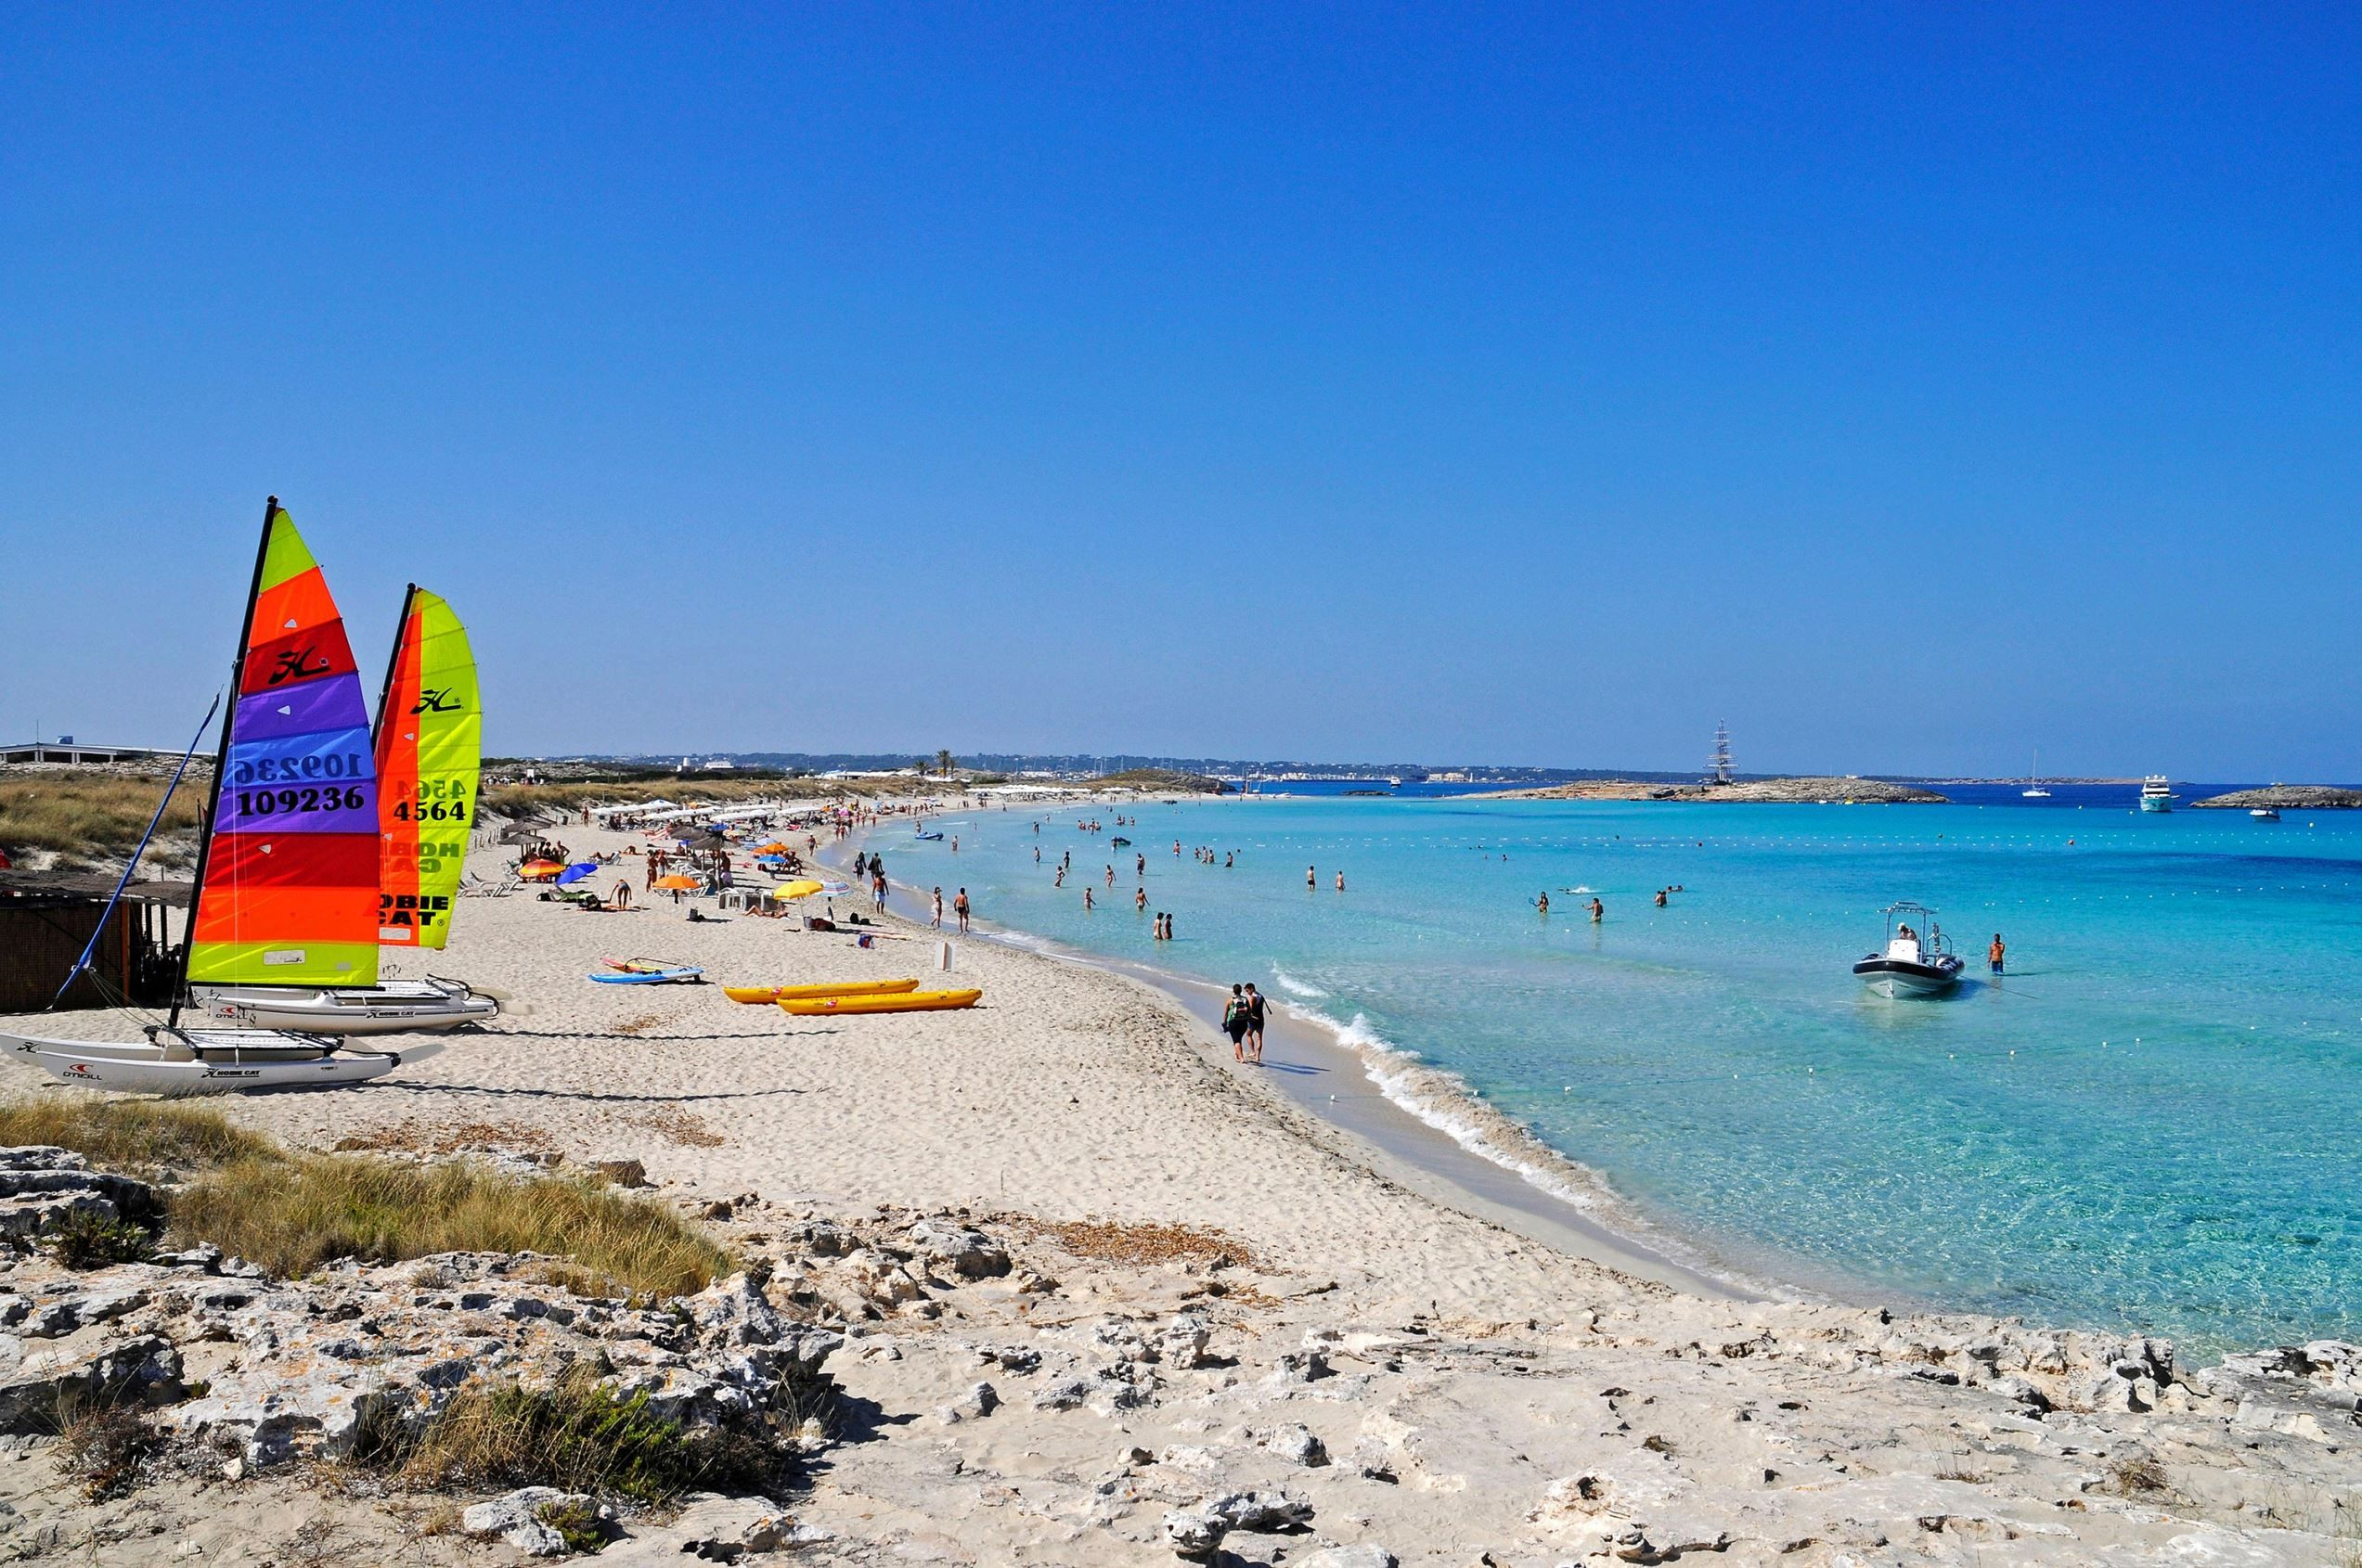 playa de ses illetes formentera spain getty